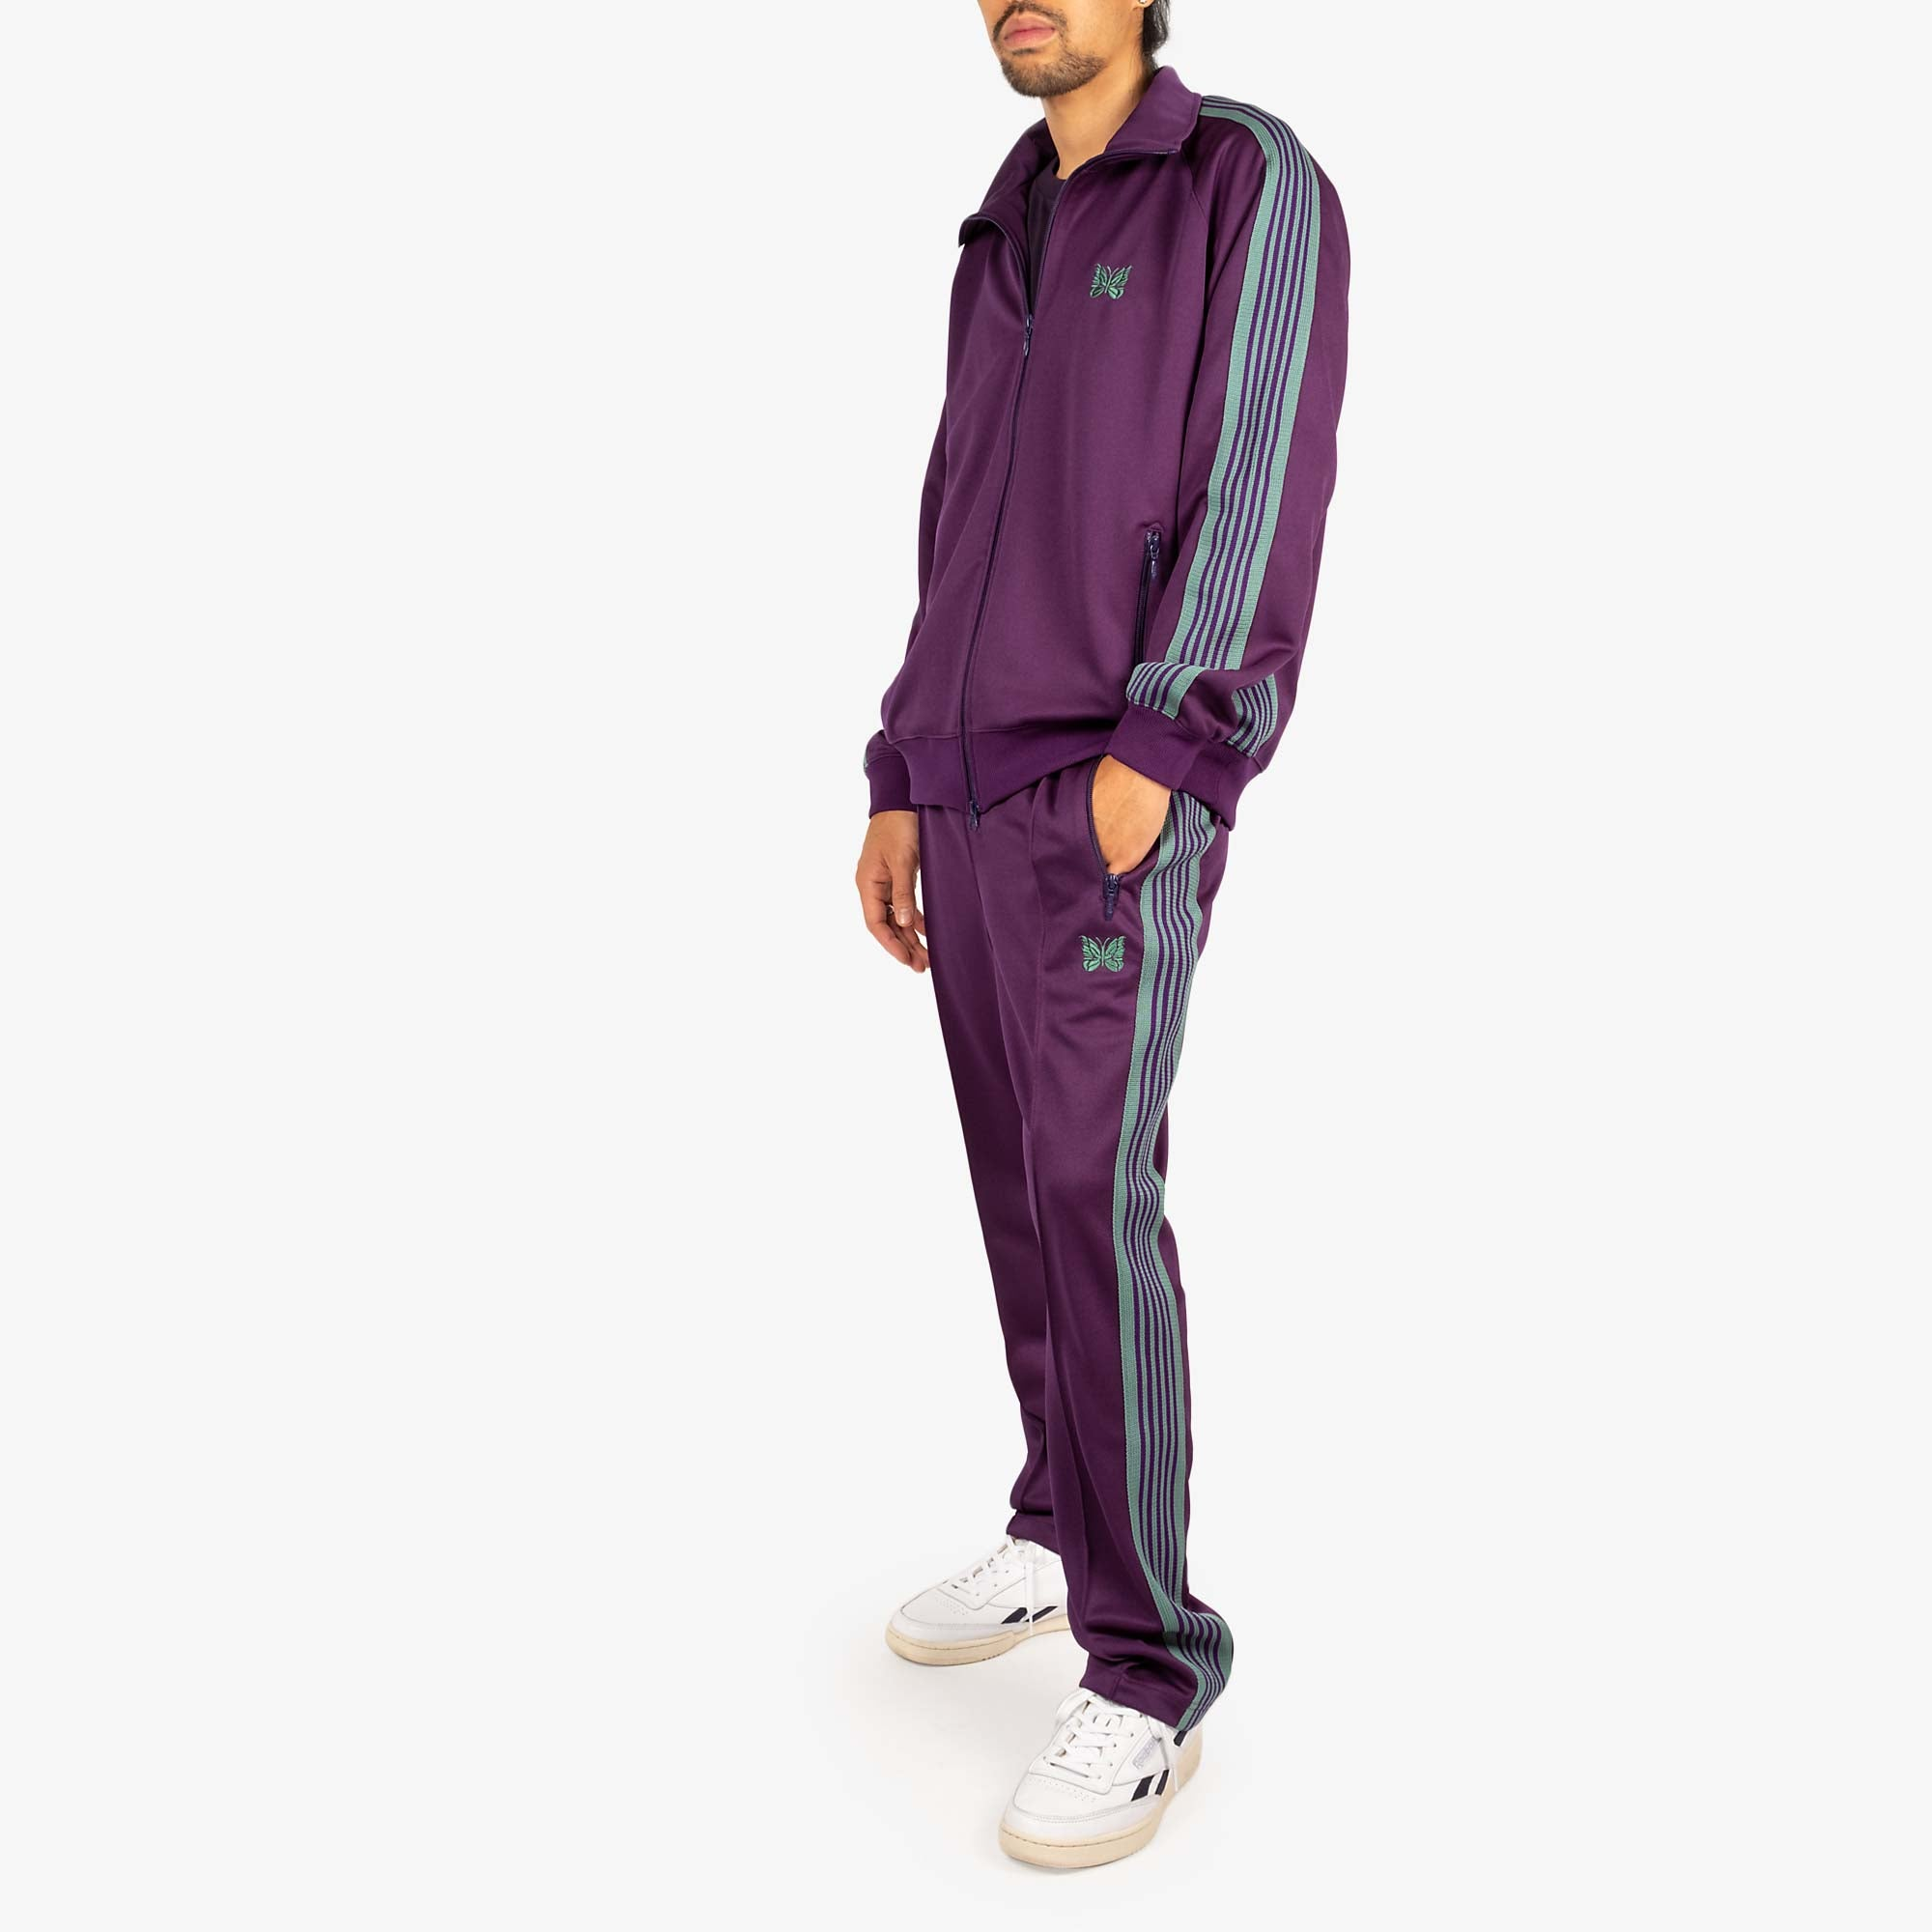 Needles M' Track Jacket - Poly Smooth Eggplant 7